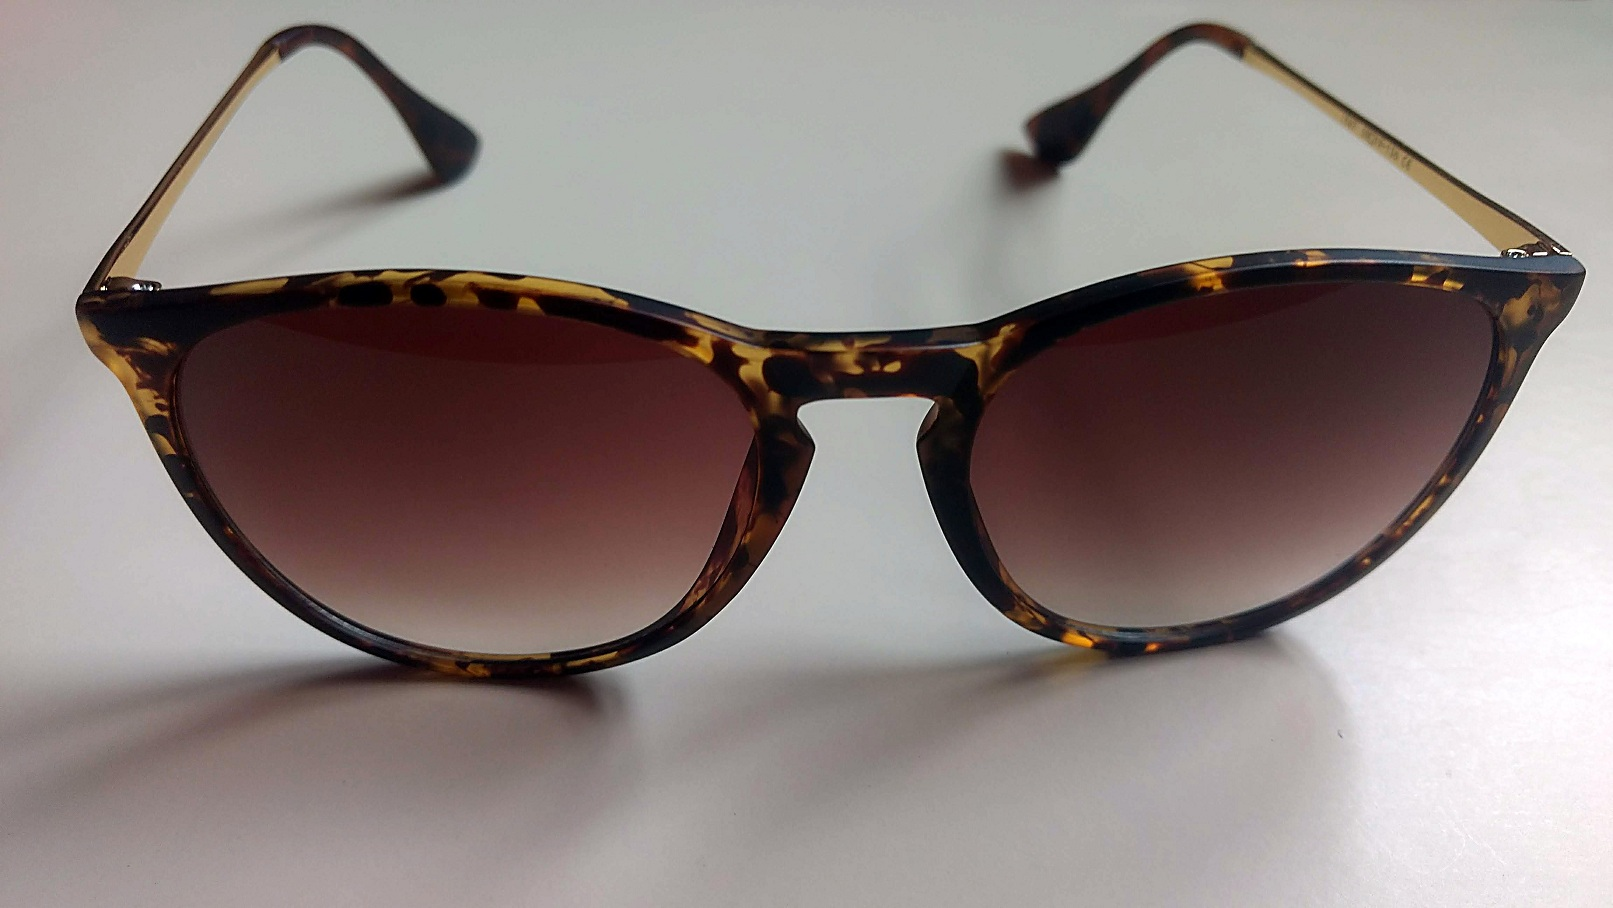 Classy Looking Women's Retro Sunglasses